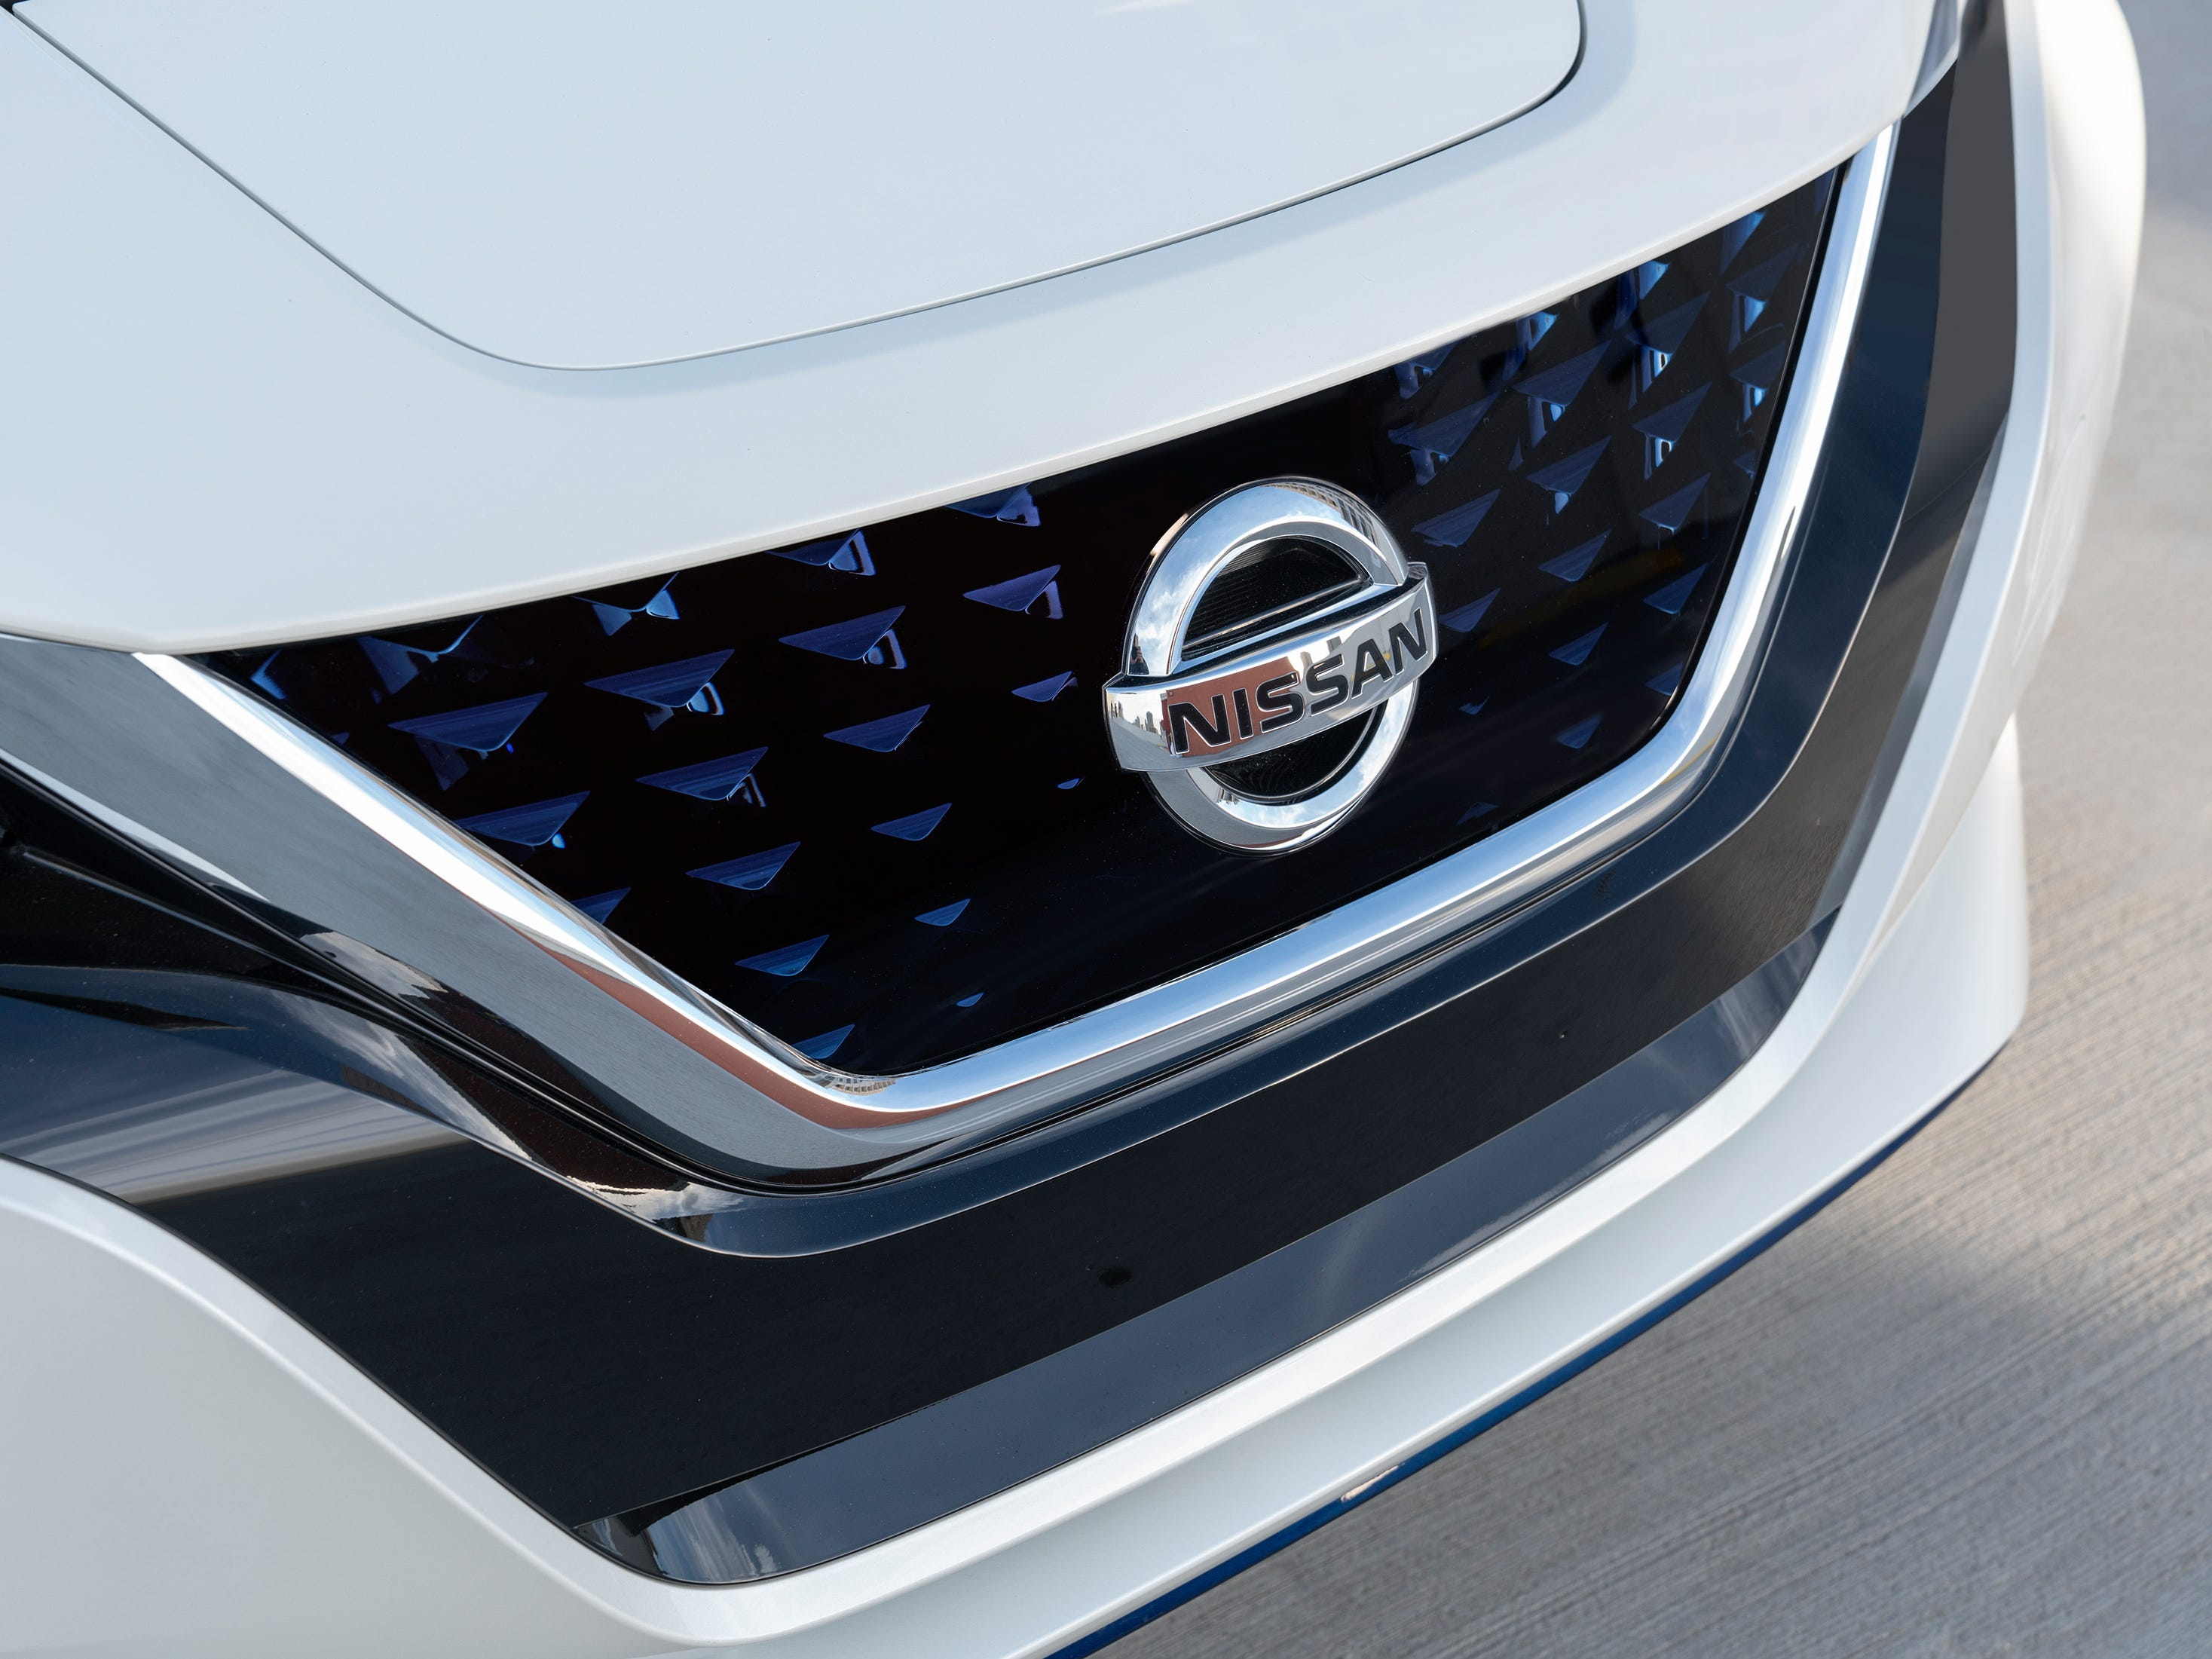 The Nissan Leaf Plus Series is an electric car with 225 miles of battery range.